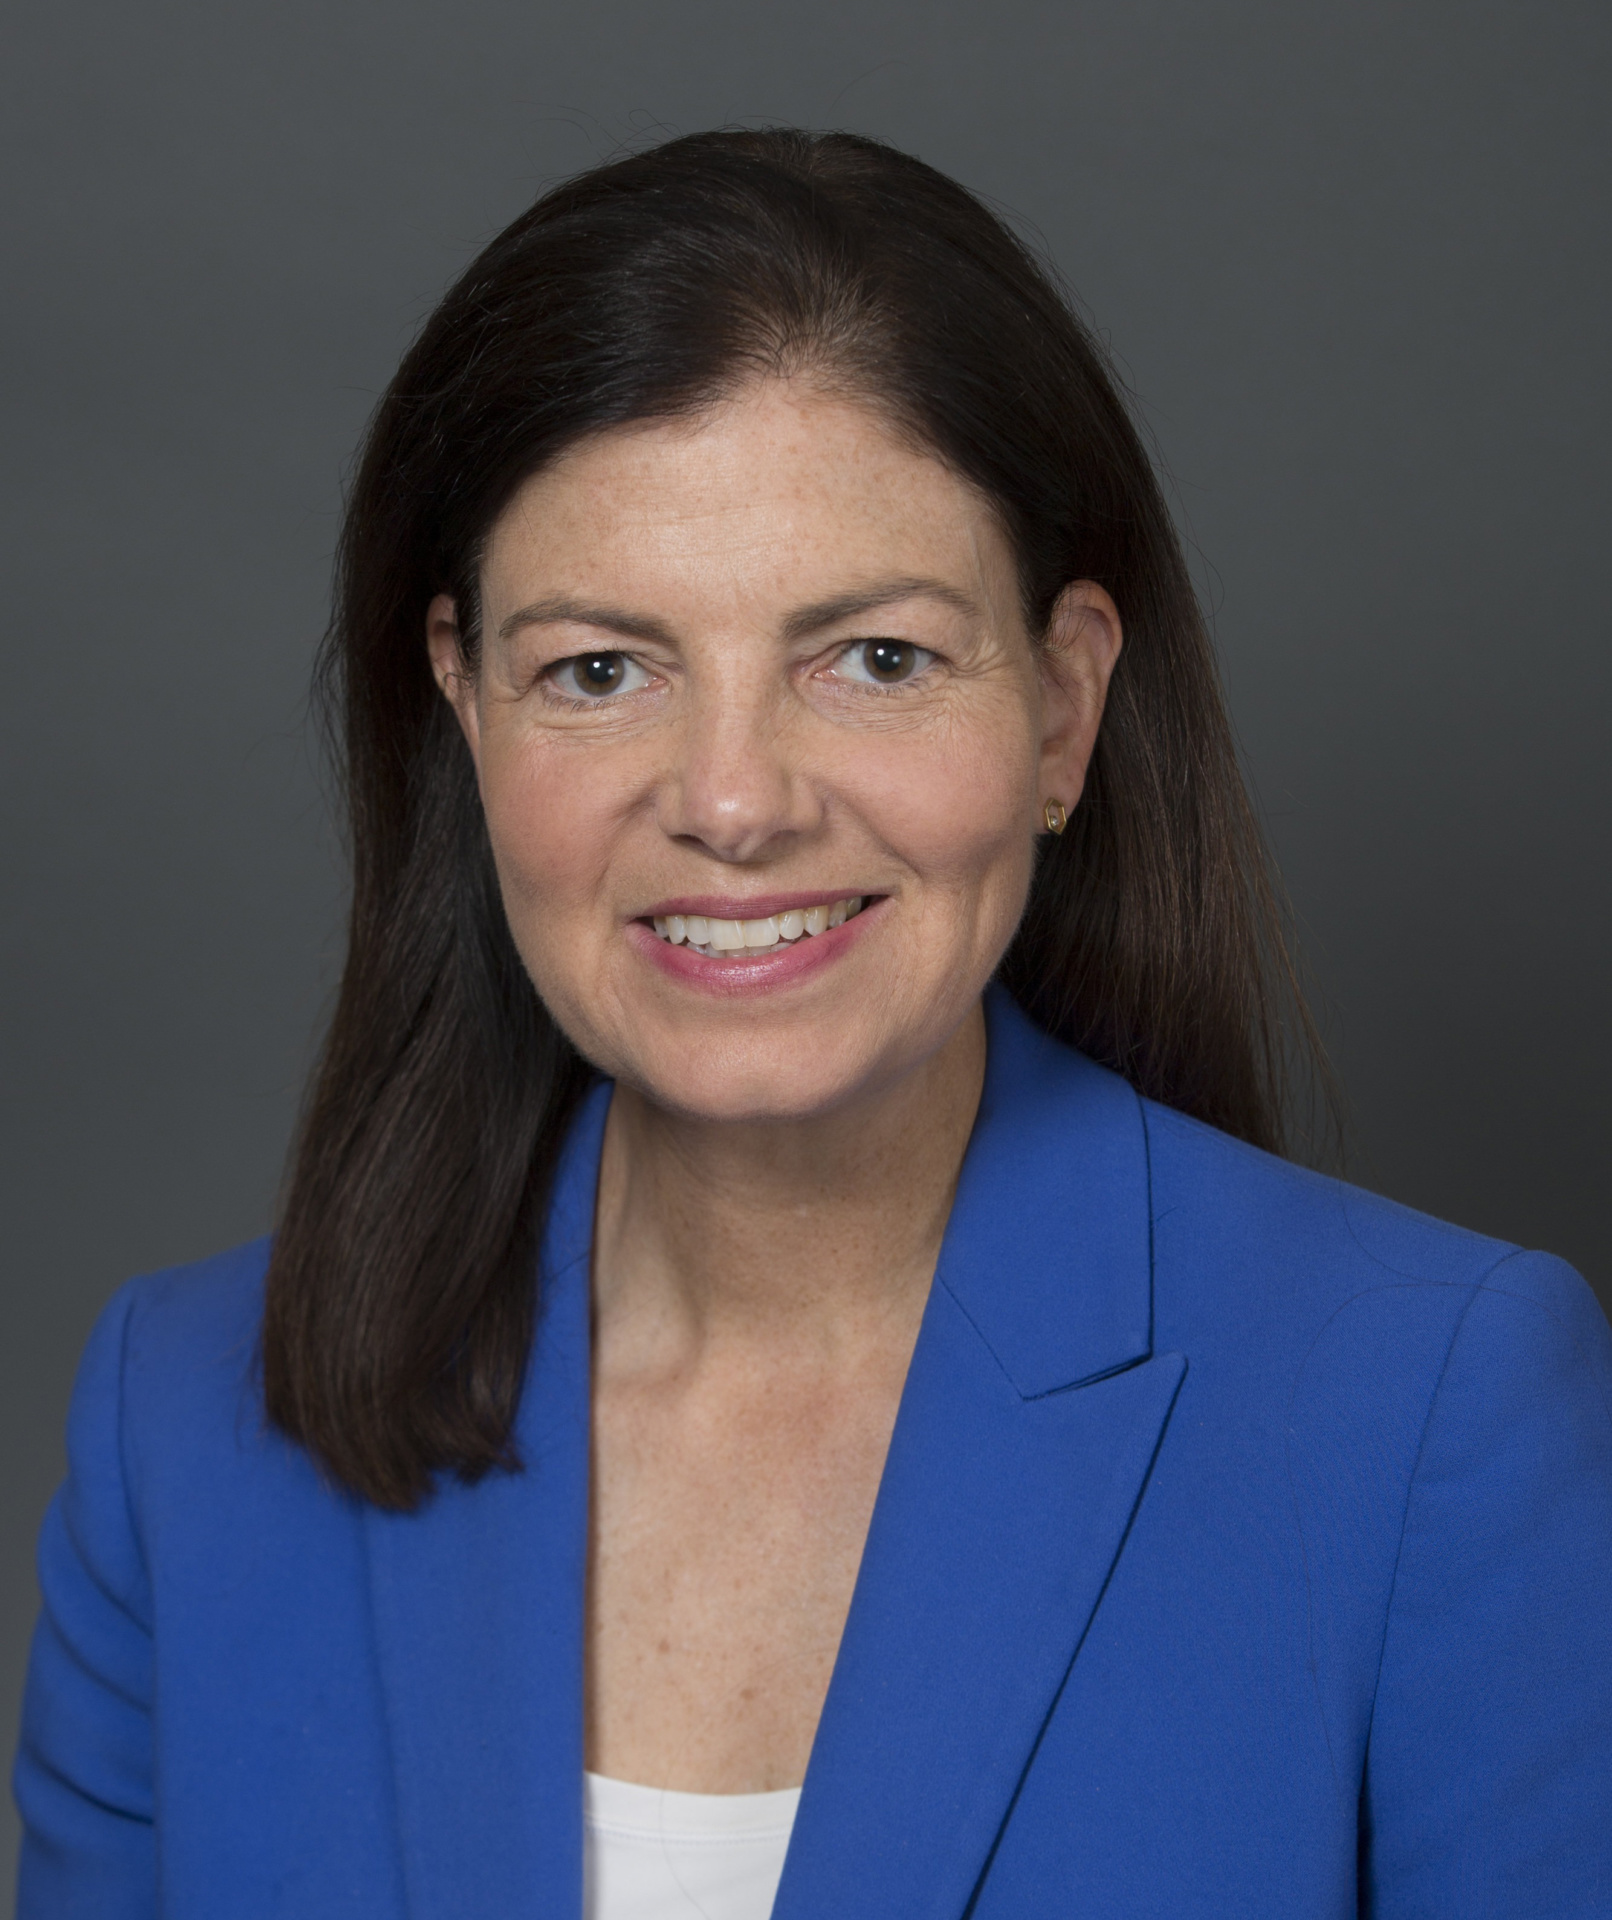 Kelly A. Ayotte